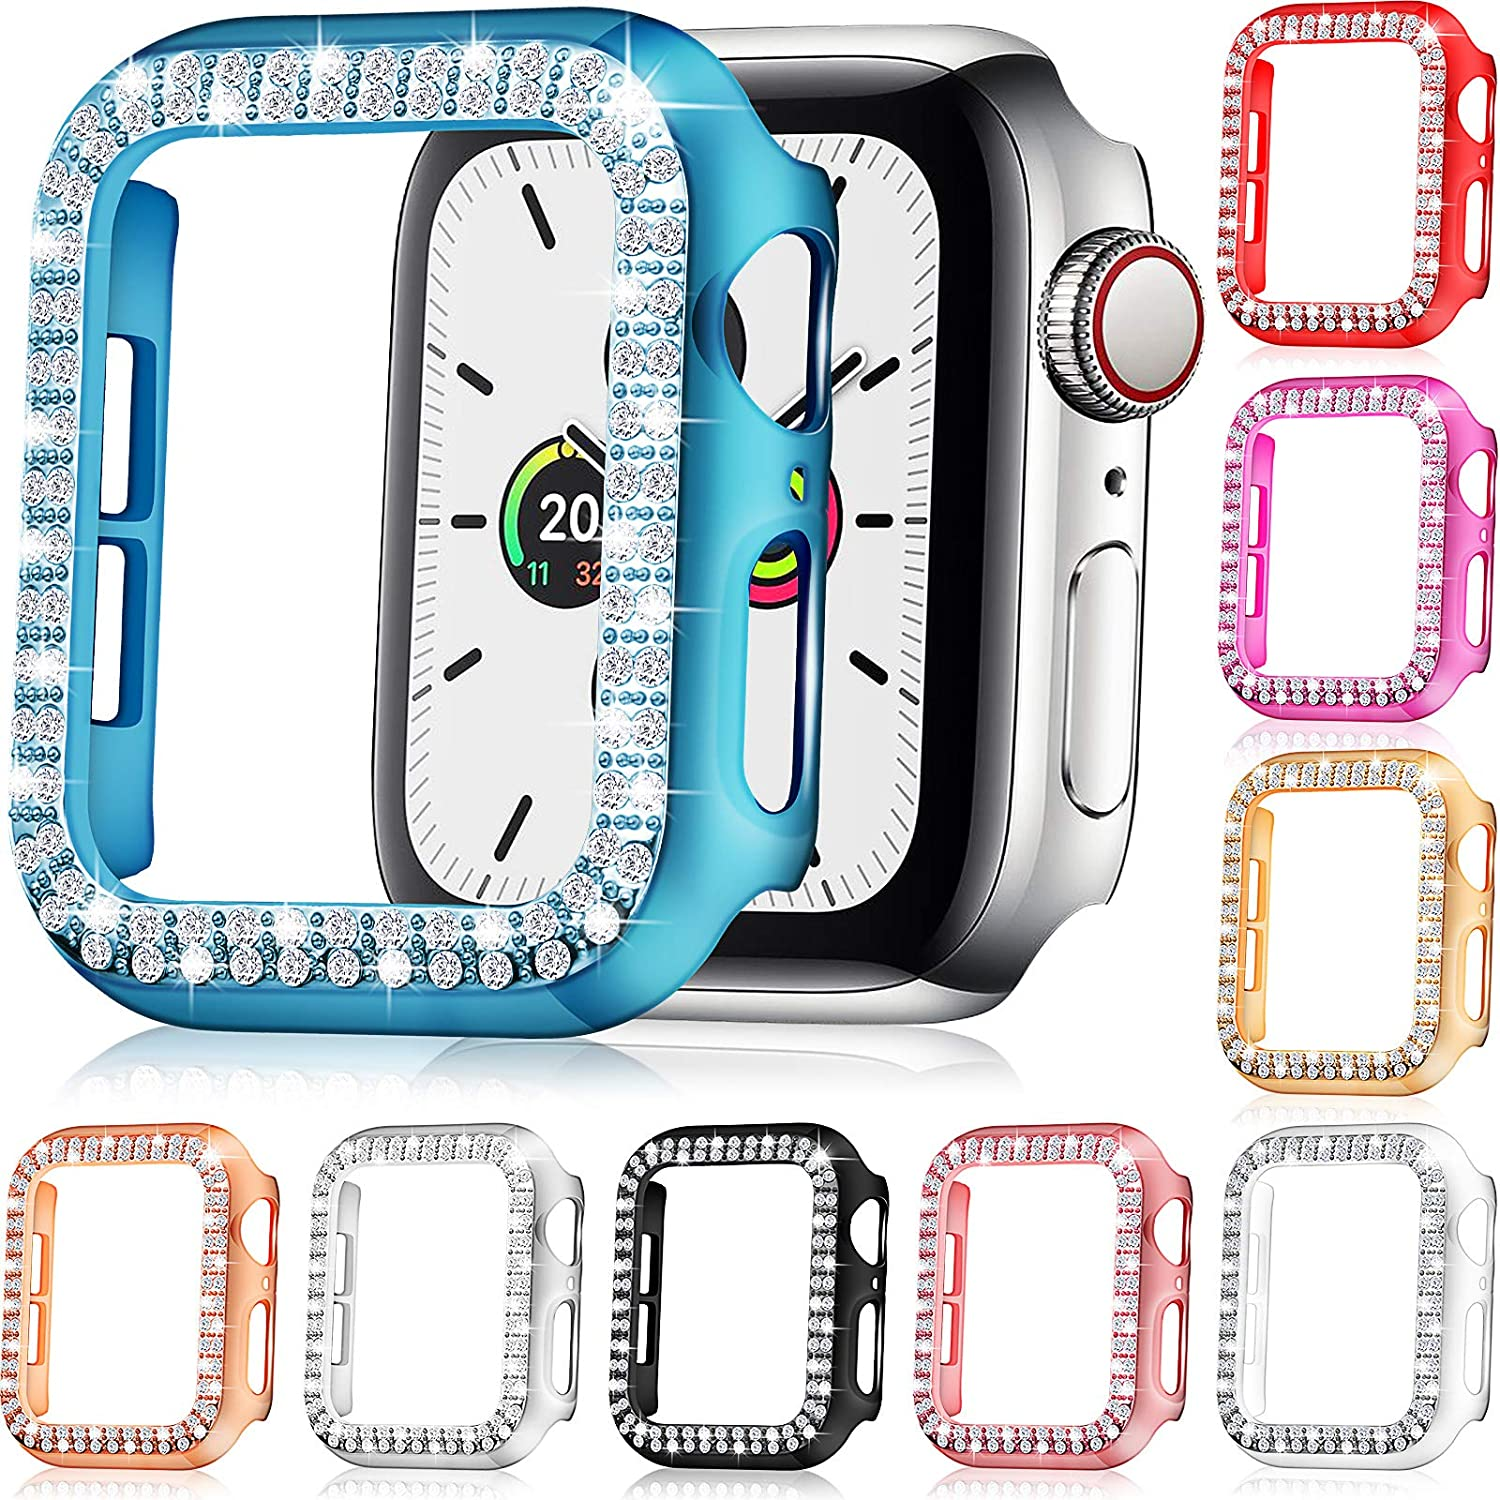 9 Pieces Watch Case Protector Compatible with Apple Watch Series 6/5/4/SE/3/2/1, Bling Crystal Diamonds Sparkle Rhinestone Watch Cover Plated Hard Frame Protective for Girl Women, 9 Colors (38 mm)